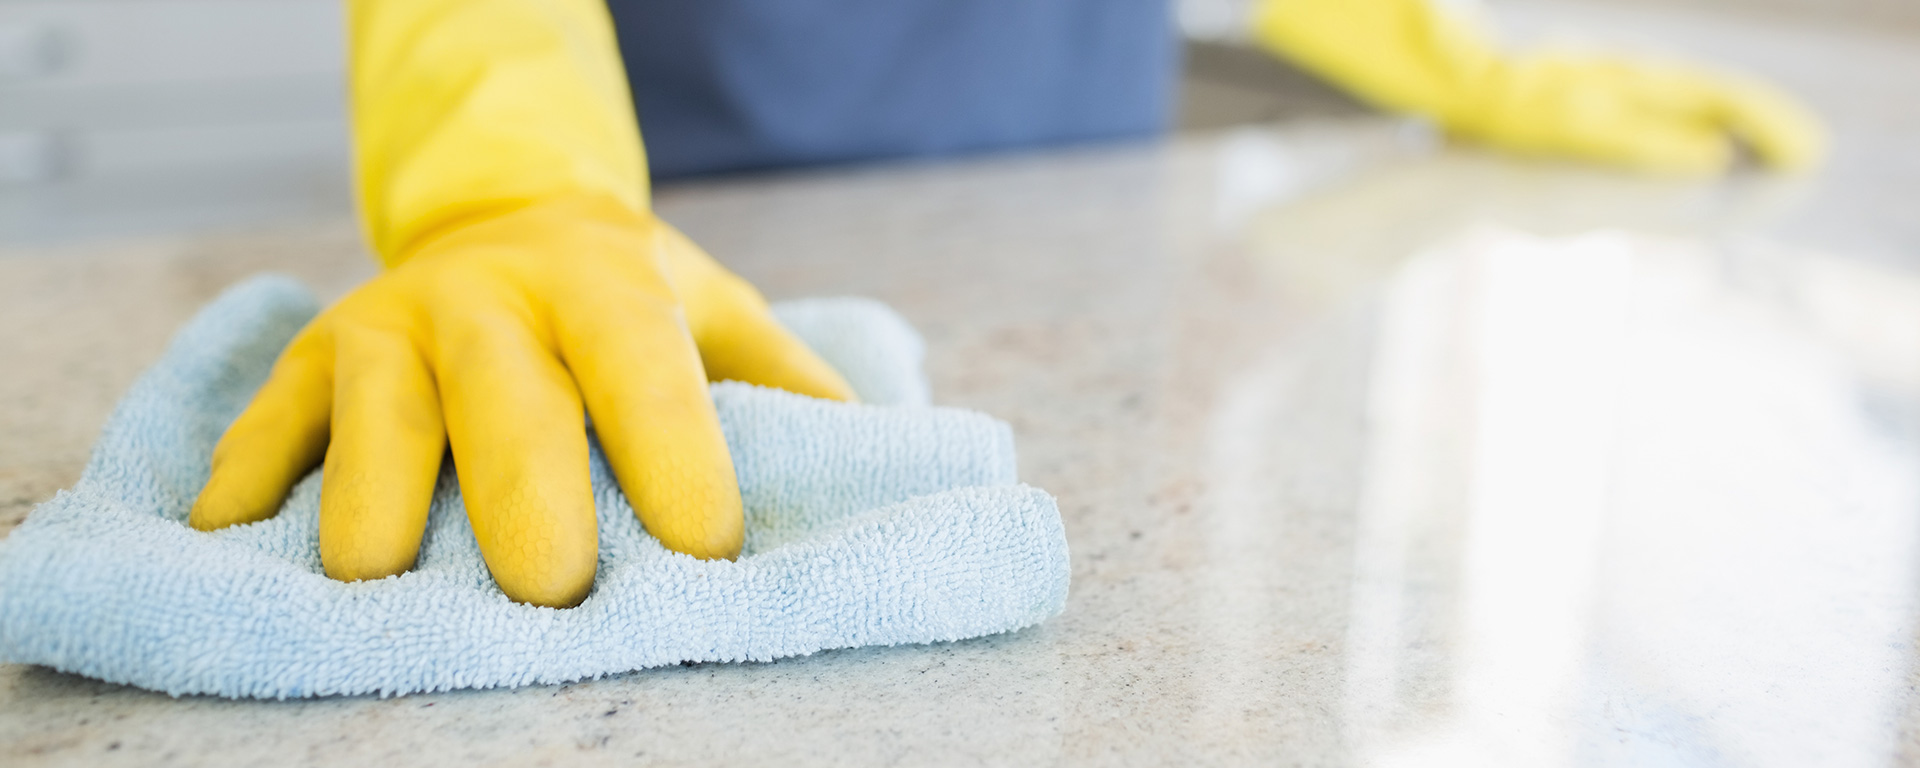 6 Quick & Easy Home Cleaning Tips – Poly-World Blog on new construction cleaning, home insurance tips, home coffee tips, real estate tips, home handyman tips, home construction tips, home energy tips, landscaping tips, home organizing tips, home packing tips, home care tips, travel tips, house cleaning, home repair tips, home gardening tips, home management tips, home fitness tips, home finishing tips, home cooling tips, home organization, home heating tips, home security tips, home recycling tips, home inspection tips,